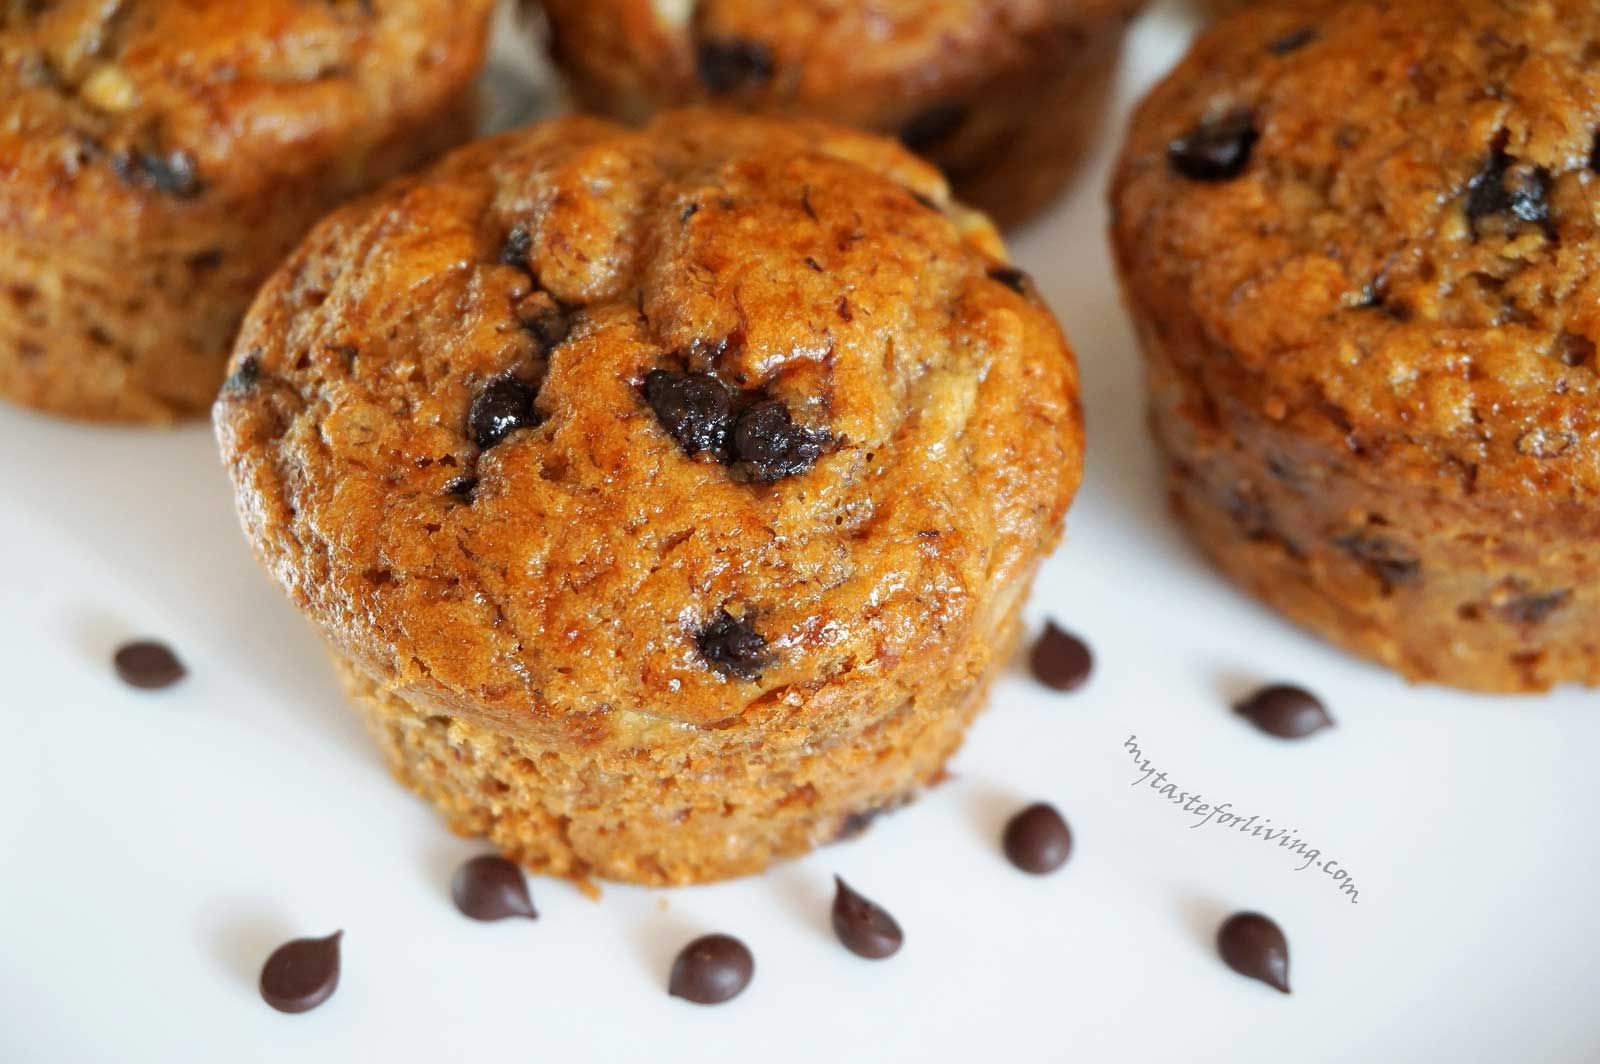 Delicious, healthy muffins made with whole wheat einkorn flour, honey and bananas, without sugar. I make them with chocolate drops or chocolate, but if you want to avoid chocolate, you can just skip it.